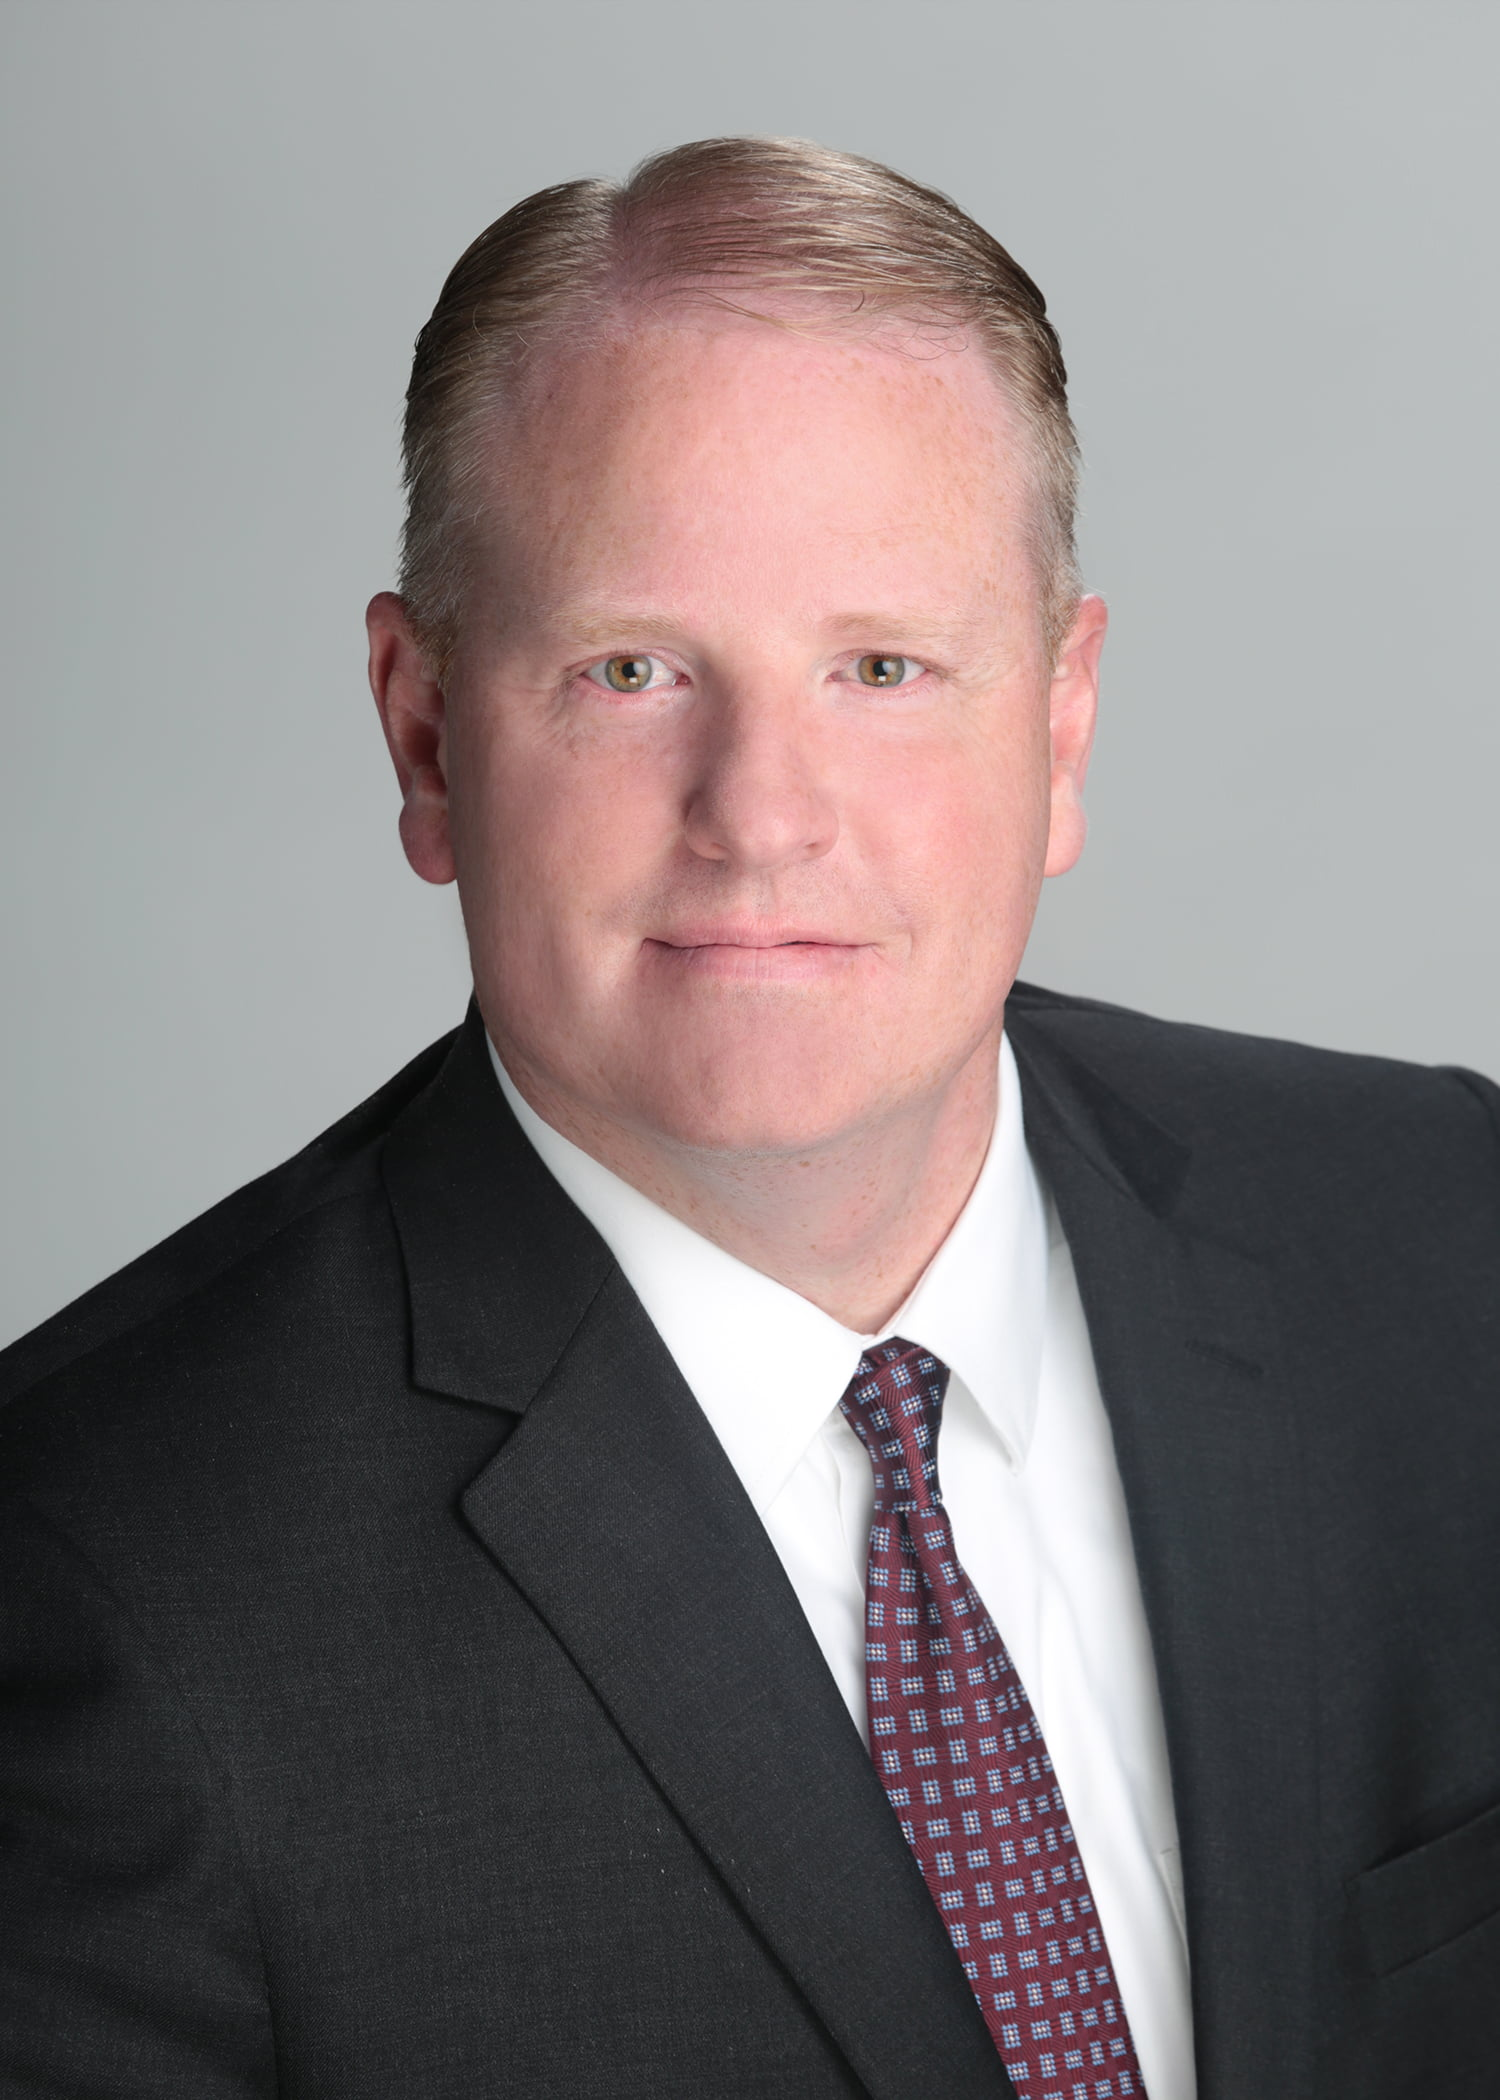 Trinity Health Names Daniel P. Isacksen, Jr. as New Executive Vice President and Chief Financial Officer